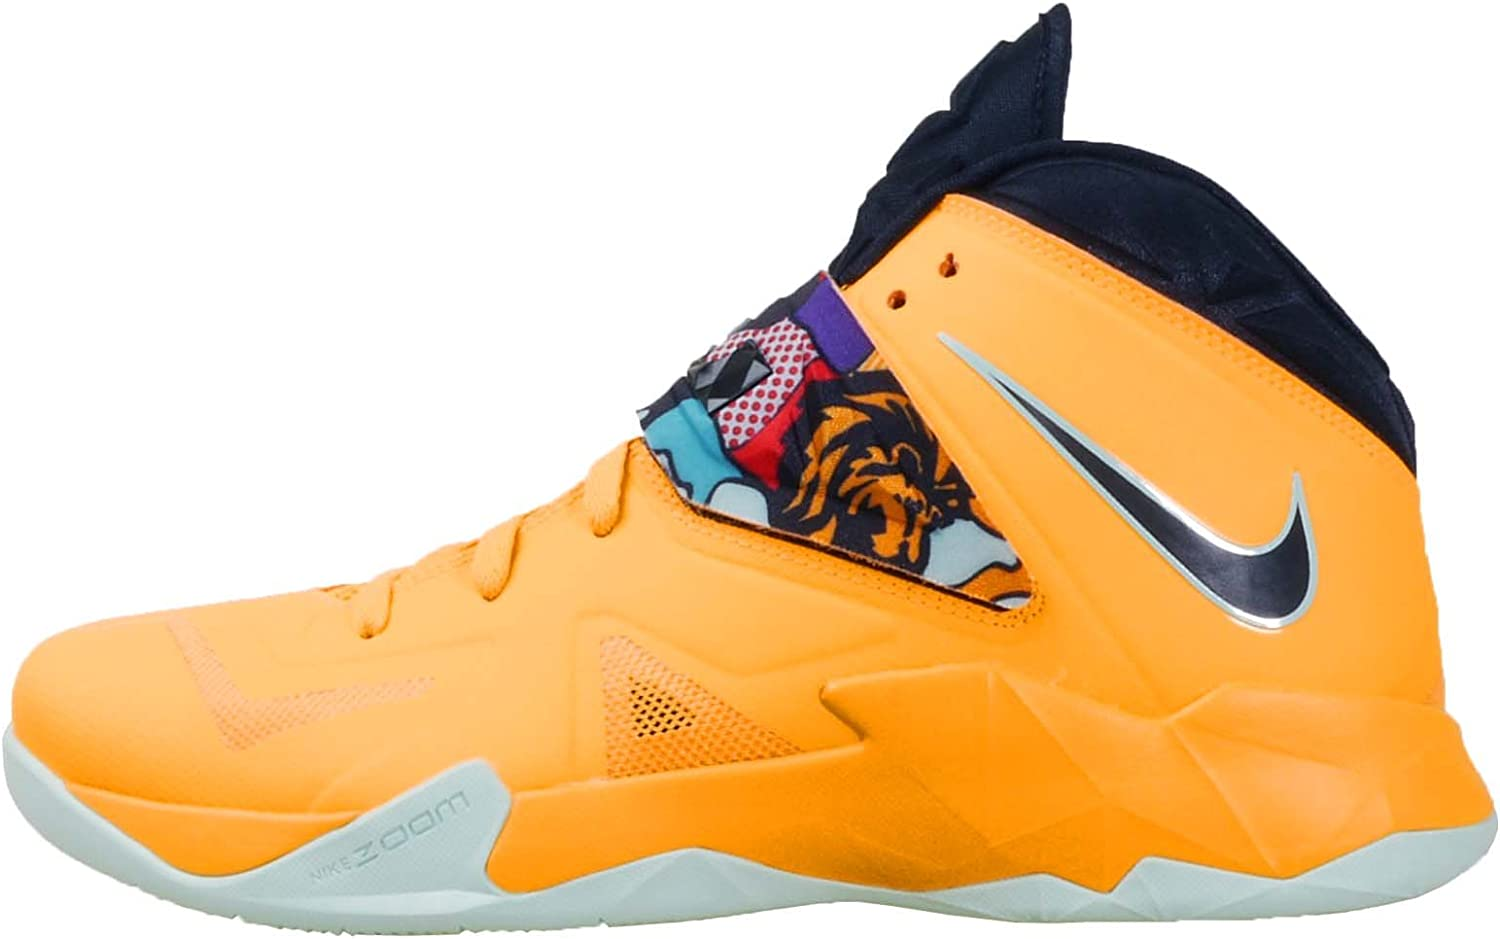 Nike Lebron James Zoom Soldier Vii 7 Mens Basketball Hi Top Trainers 599264 800 Sneakers Shoes Tour Yellow Pop Art Uk 12 Us 13 Eu 47 5 Amazon Co Uk Shoes Bags